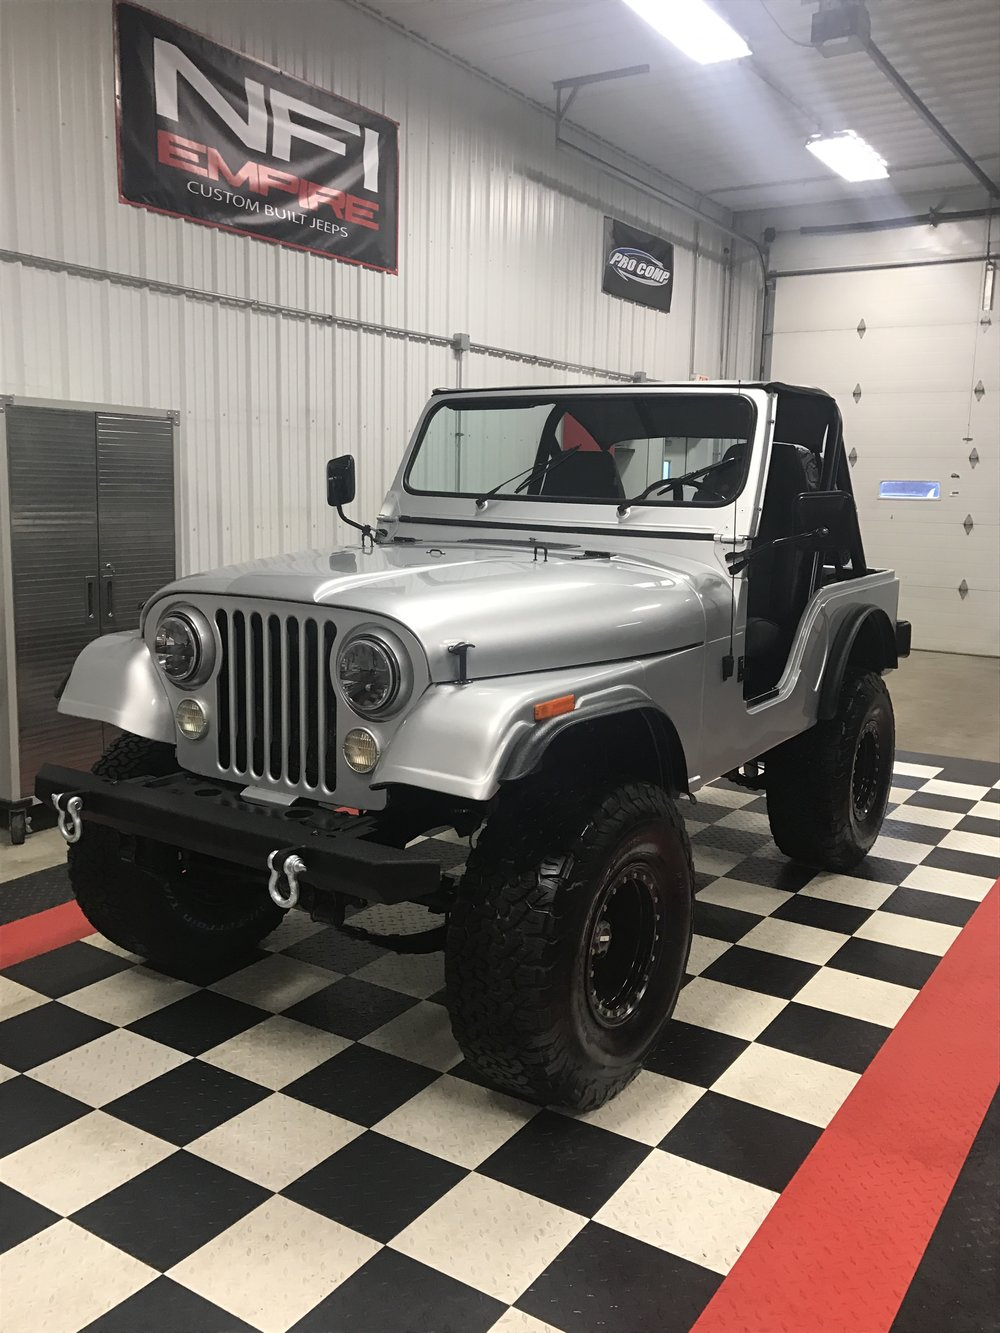 1980 SILVER CJ - CLICK TO THE VIEW THE RESTORATION PROCESS